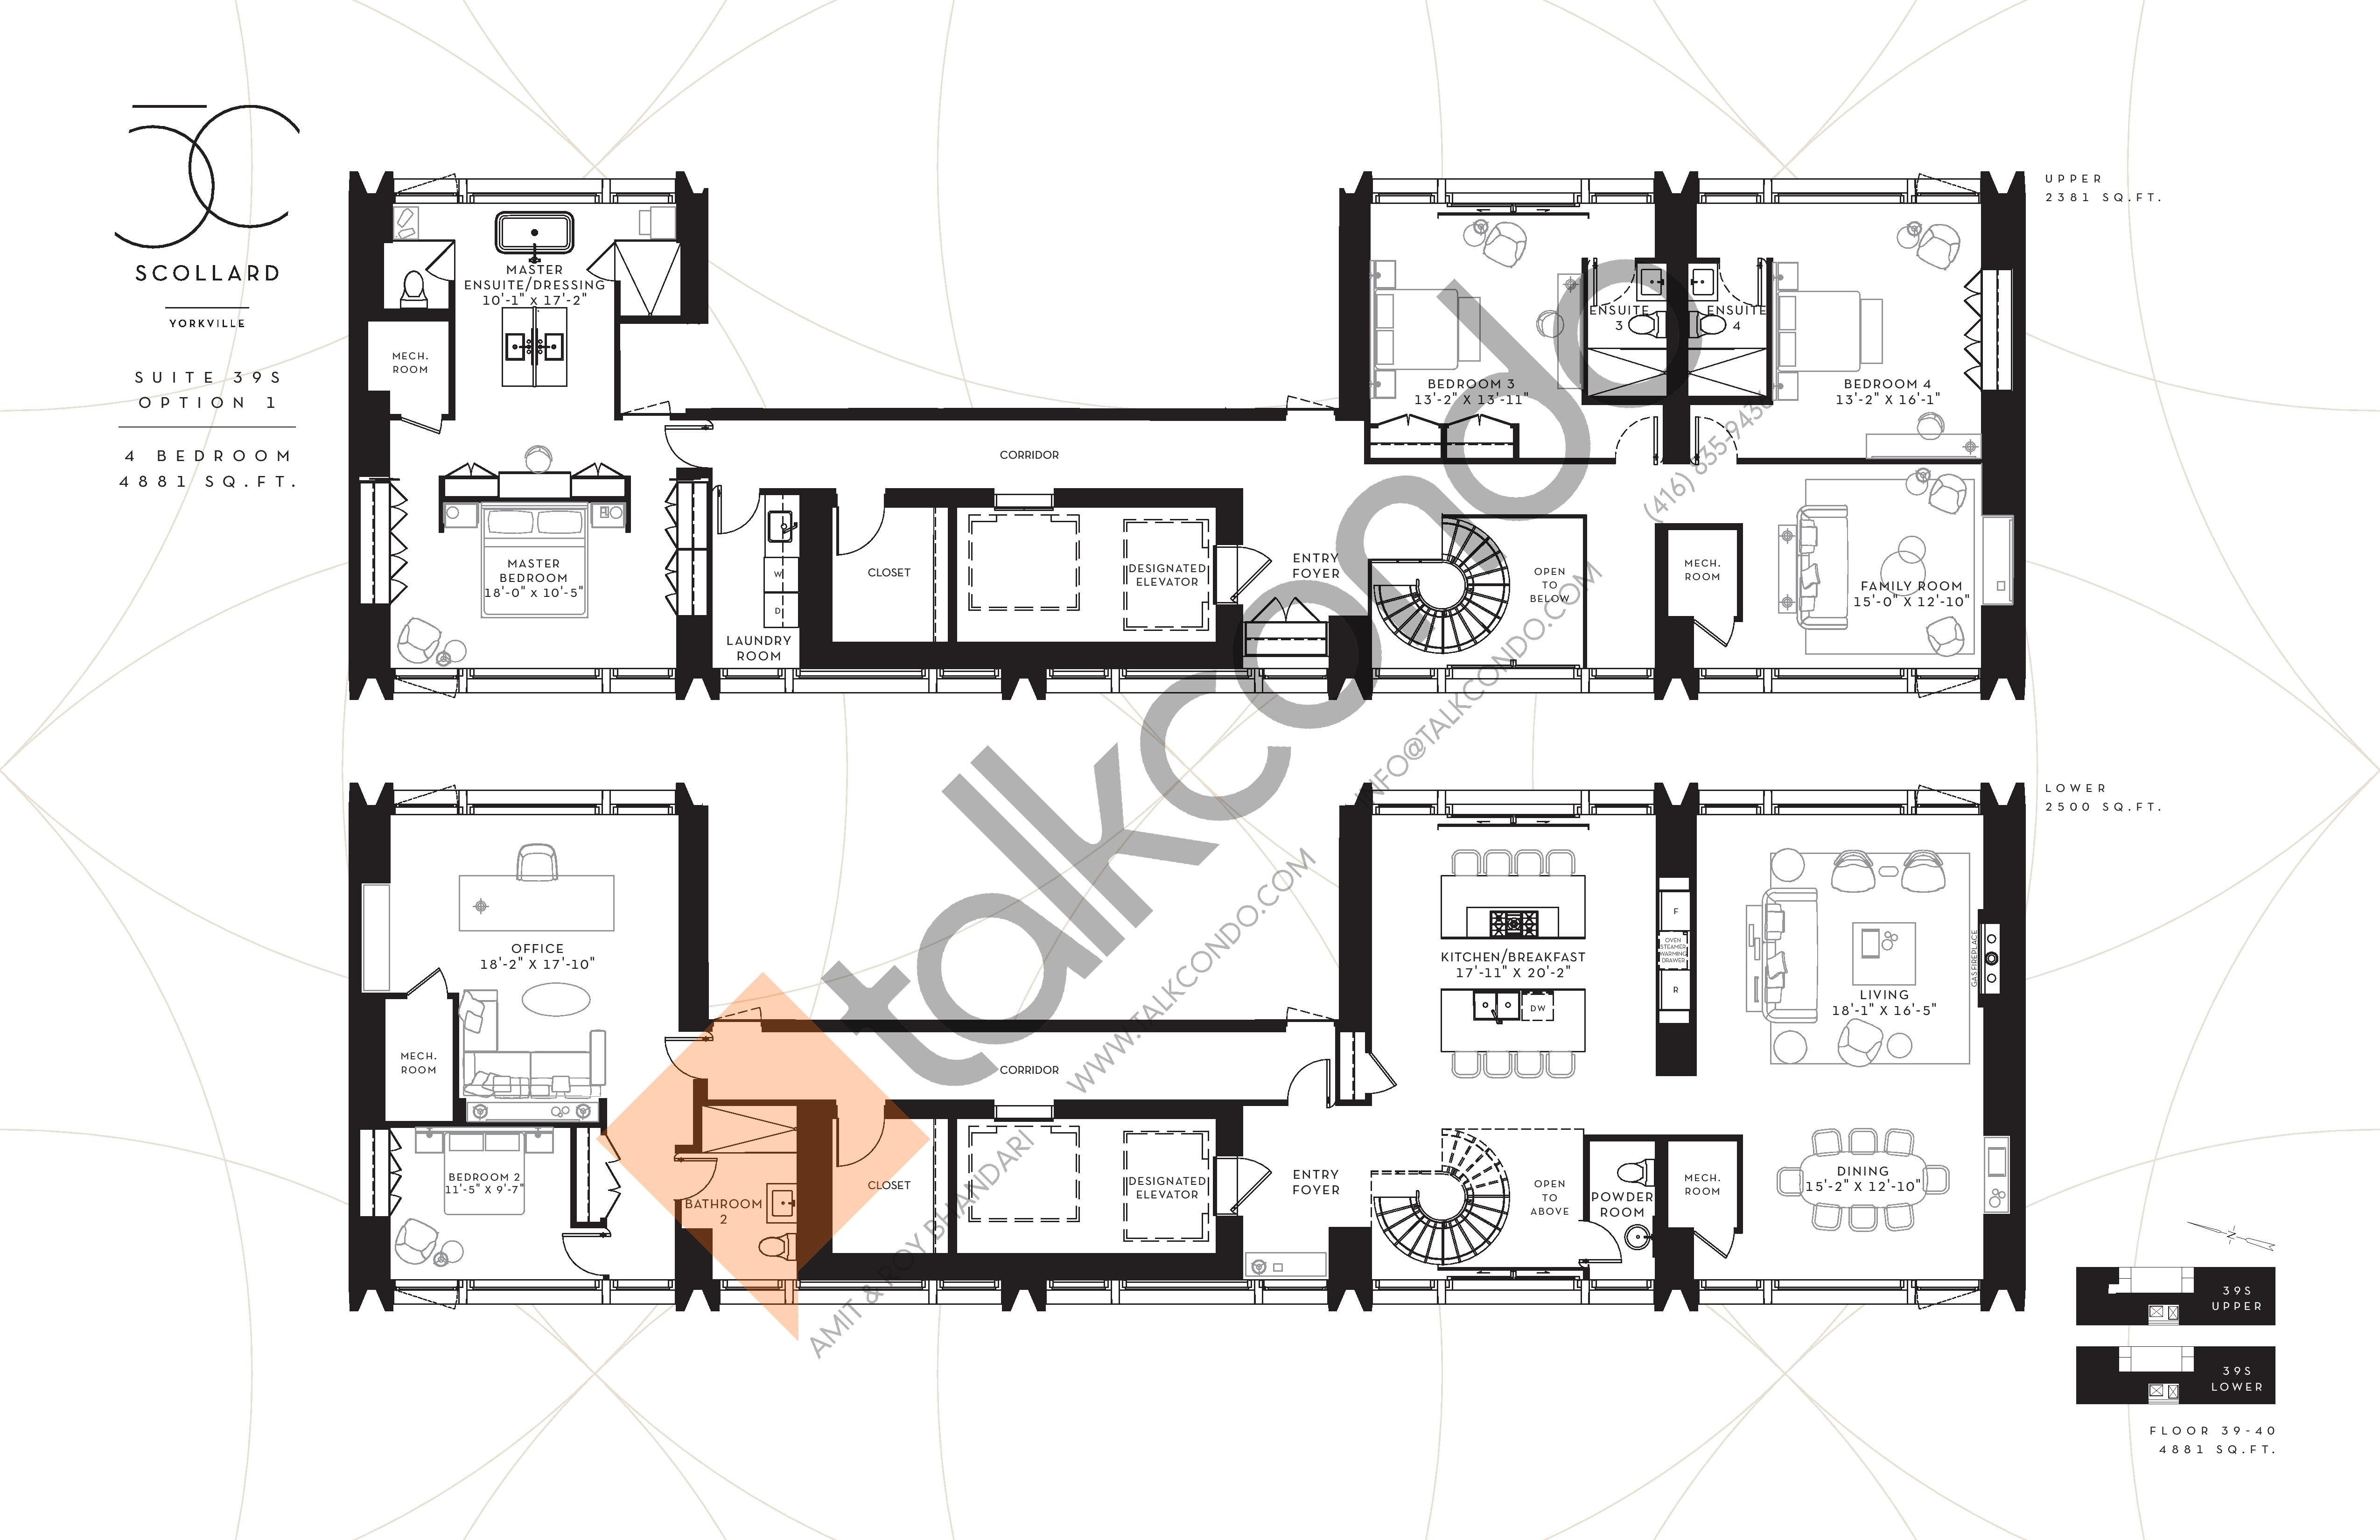 Suite 39S Option 1 Floor Plan at Fifty Scollard Condos - 4881 sq.ft